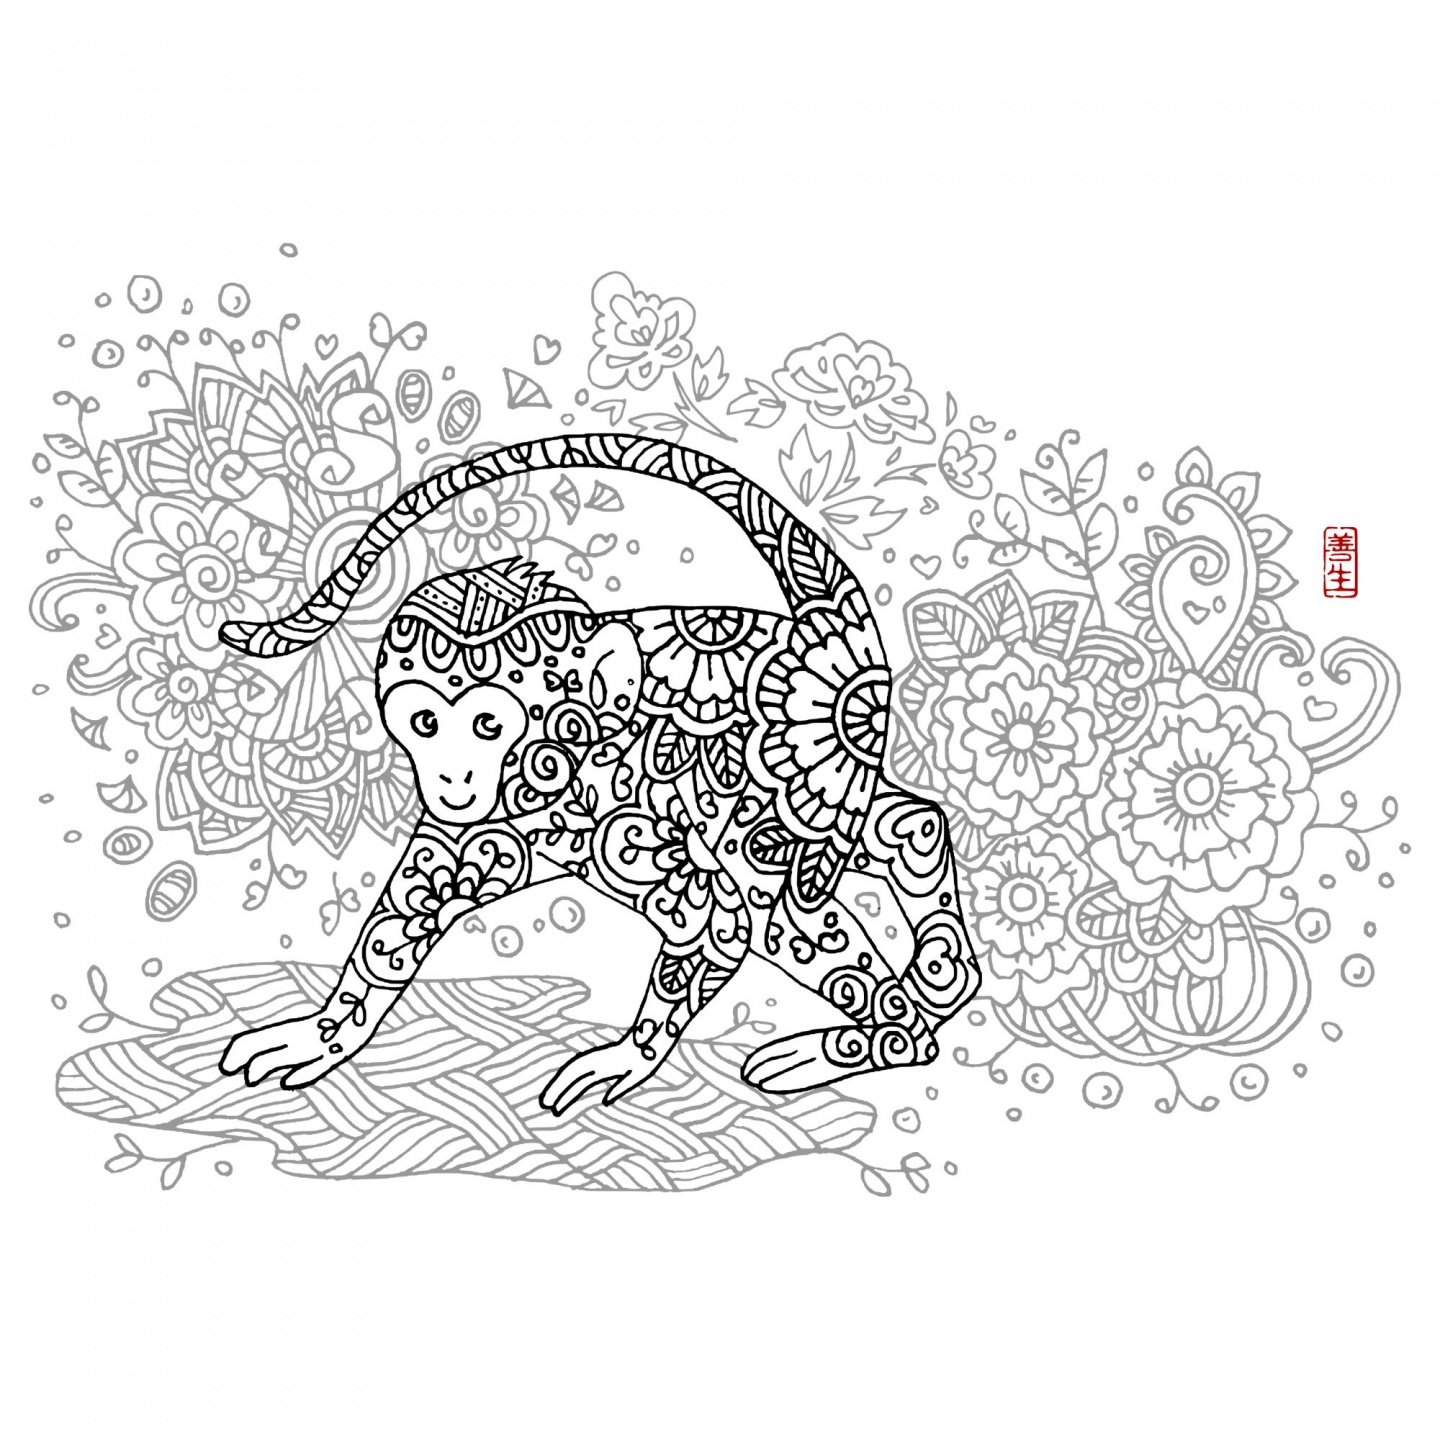 Chinese zodiac : MONKEY